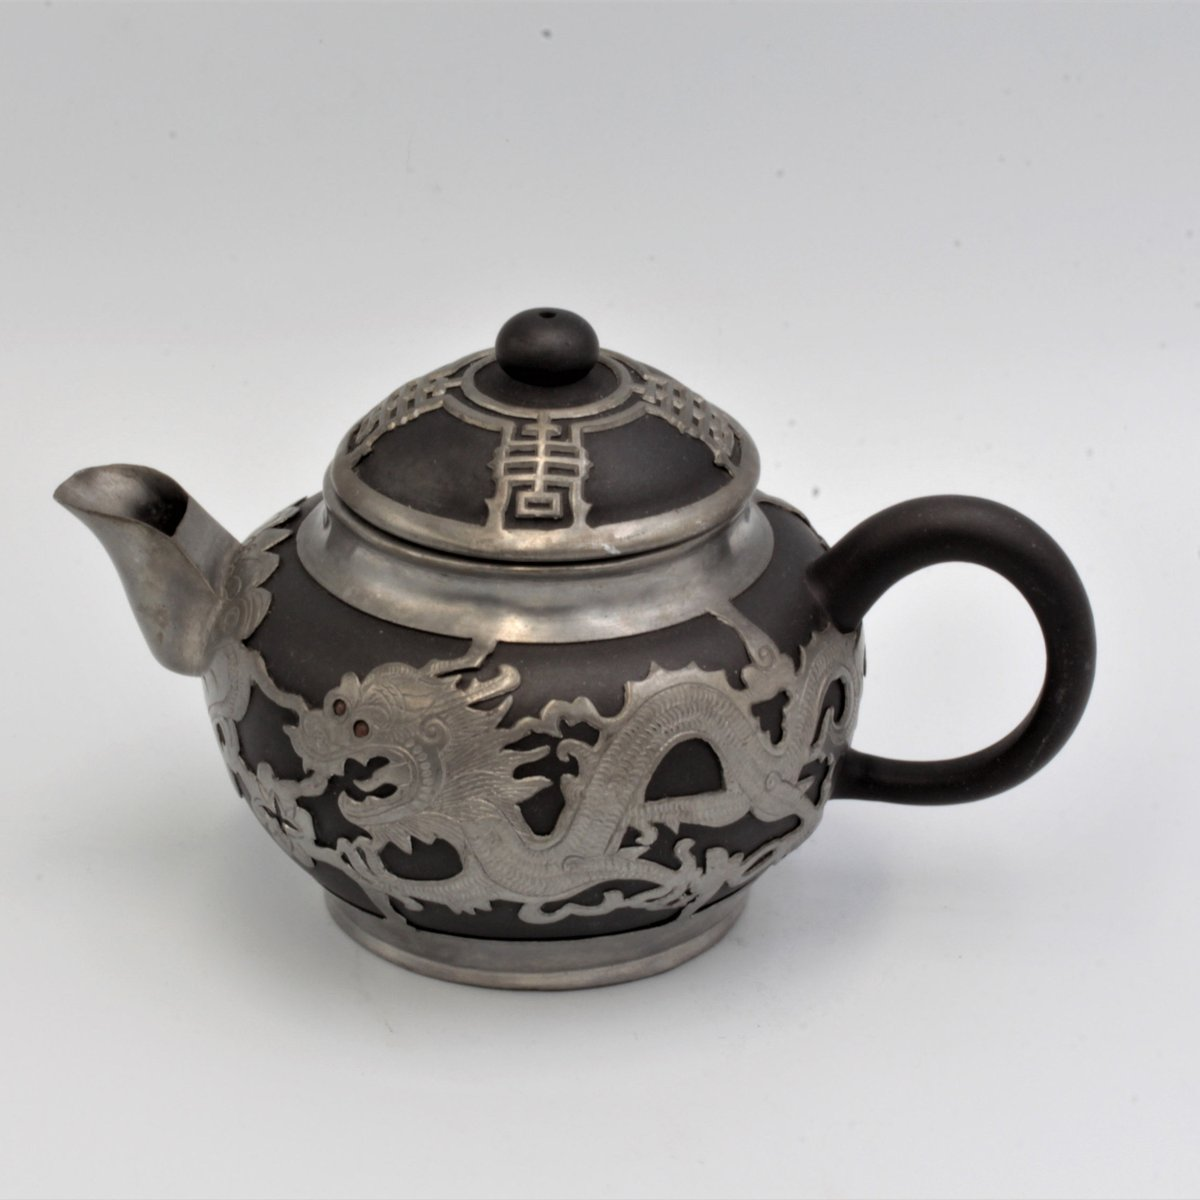 """Thanks for the kind words! ★★★★★ """"excellent shopping experience! the teapot arrived quickly and well packaged. the seller has been very kind and willing to give further informations and clarifications."""" flosiac https://t.co/BYaNuAjj76 #etsy #grey #housewarming #silver https://t.co/dTyXXvZ81P"""